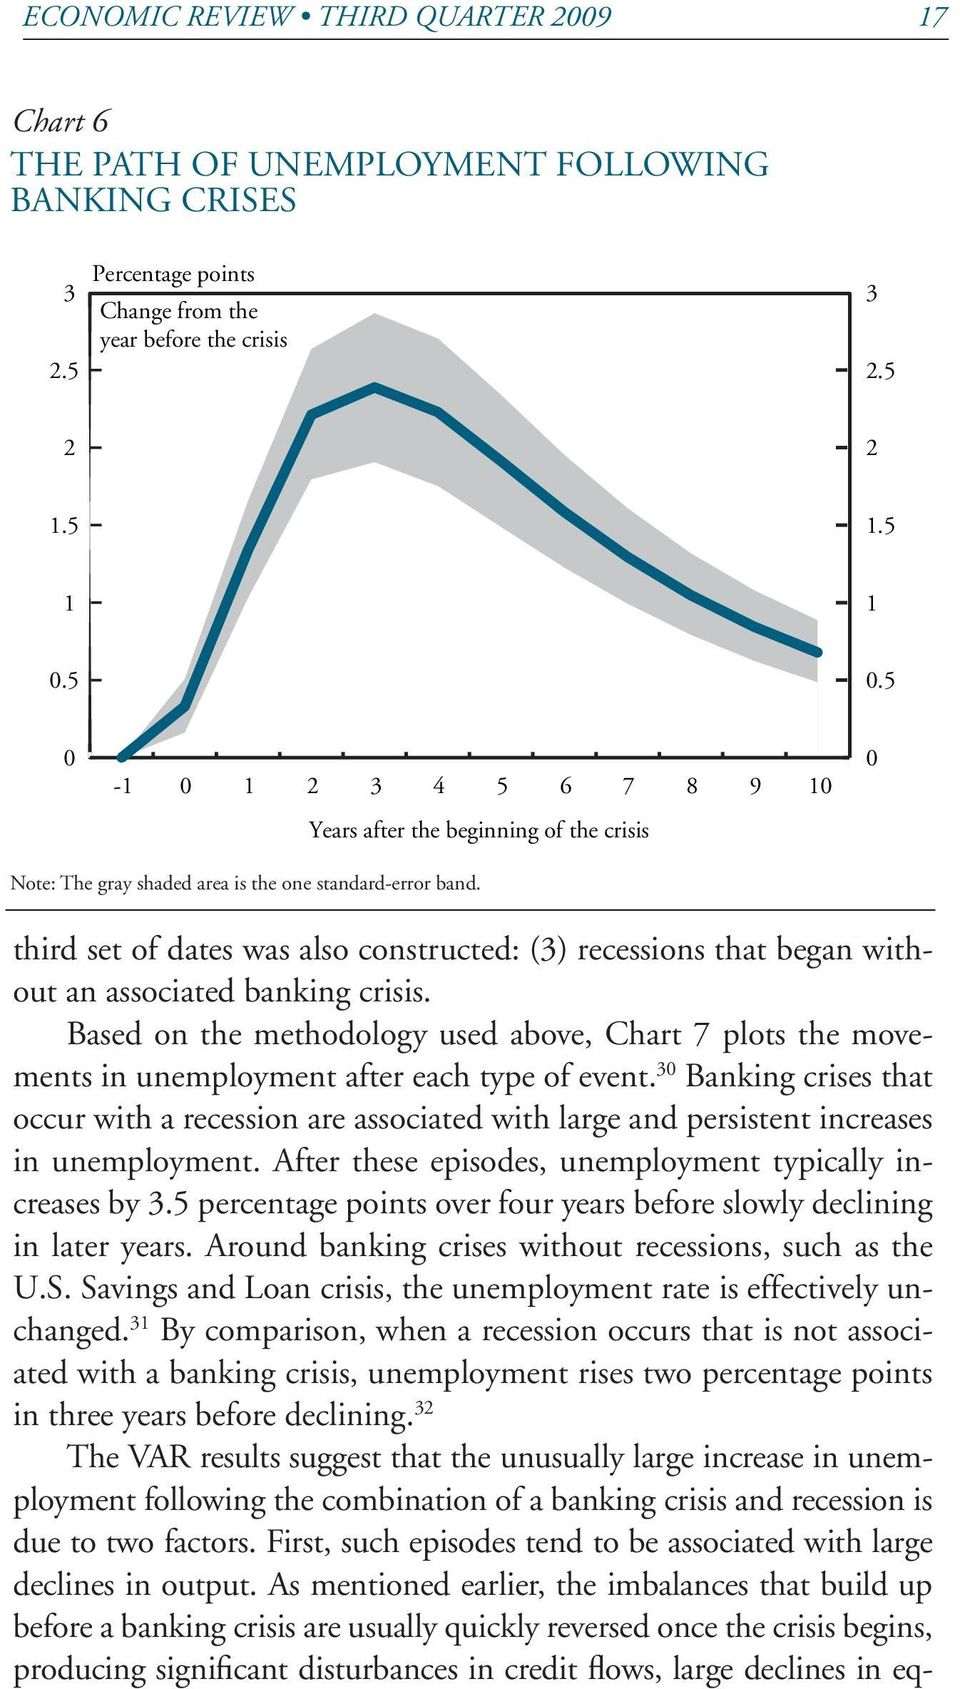 third set of dates was also constructed: (3) recessions that began without an associated banking crisis.